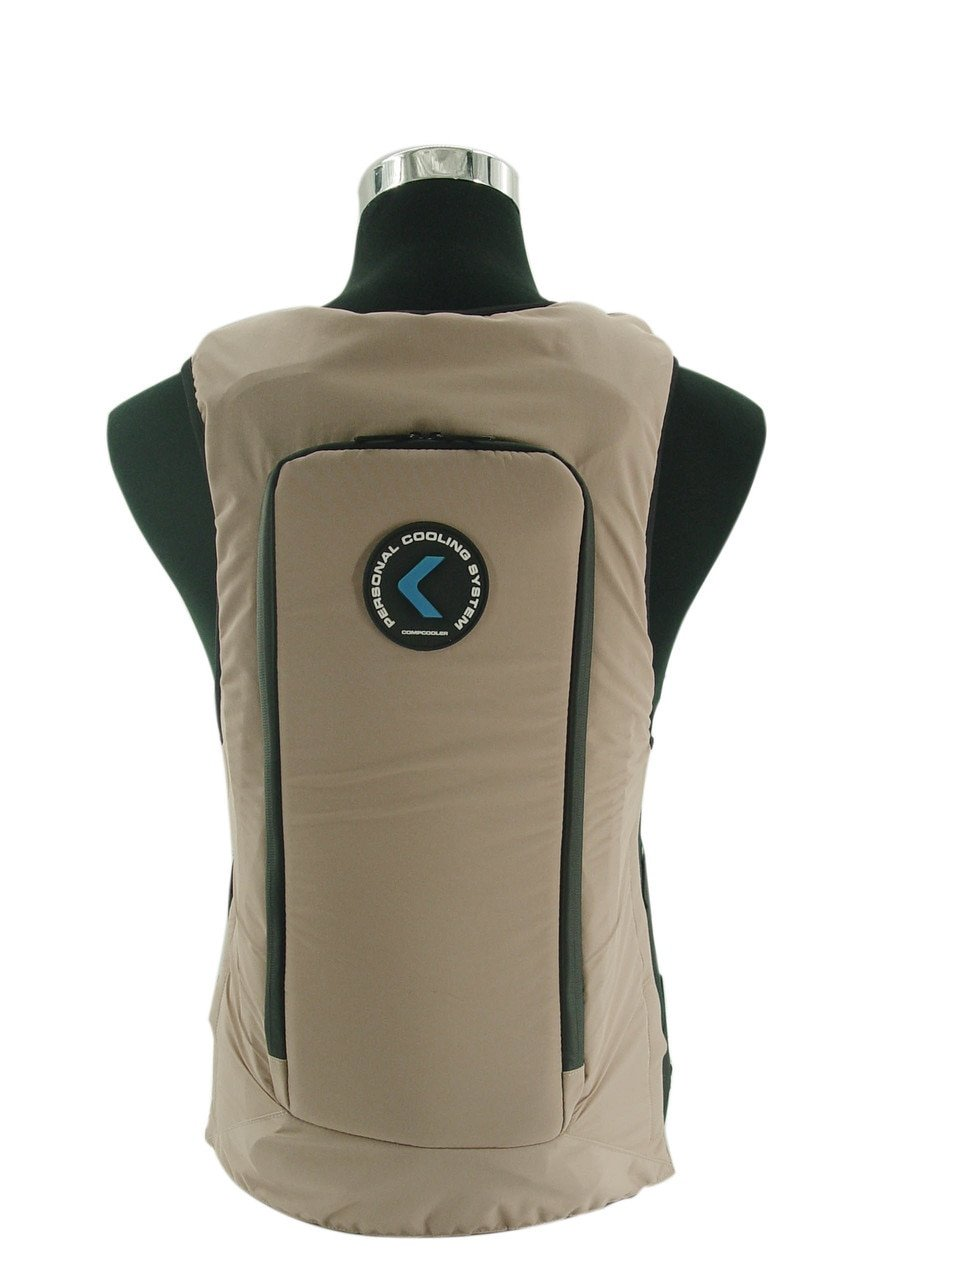 Ice Water Circulating Cooling Vest Tan Detachable Bladder M-L by Compcooler (Image #5)